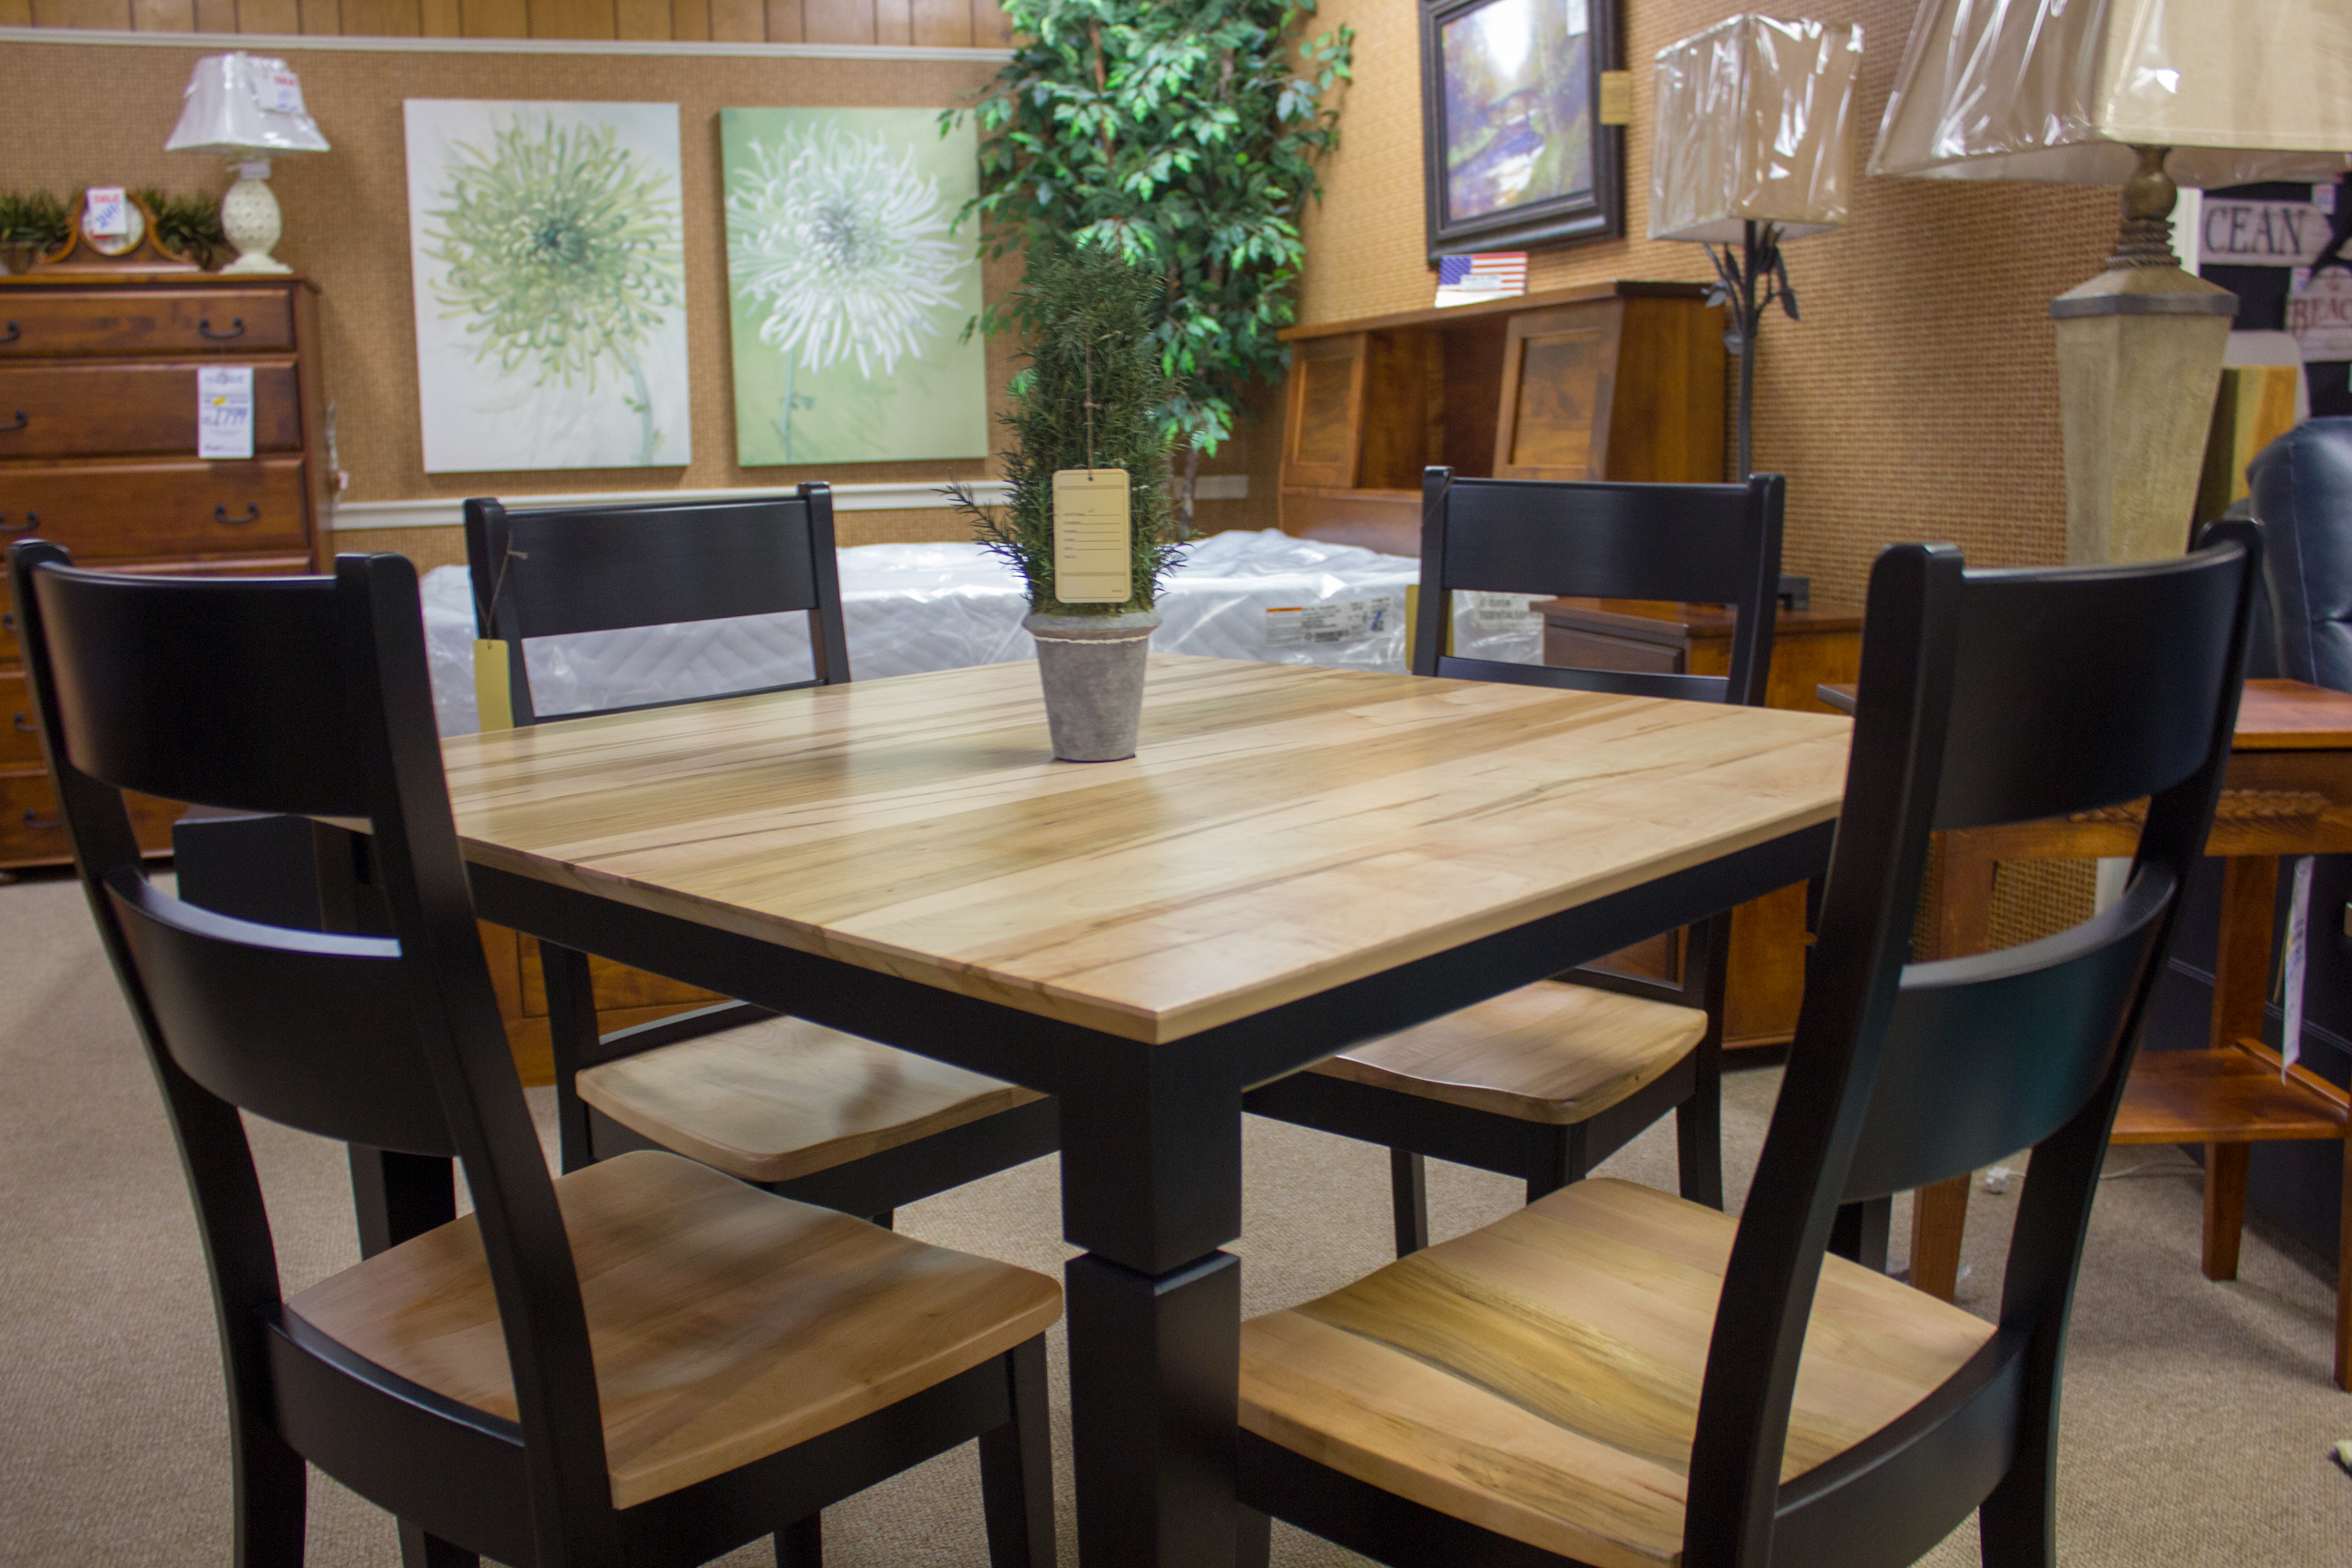 ... Scottu0027s Furniture Has An Inventory Of Leading Brands For All Styles And  Décor. We Have The Expertise To Completely Transform A Room Or Simply Add  ...